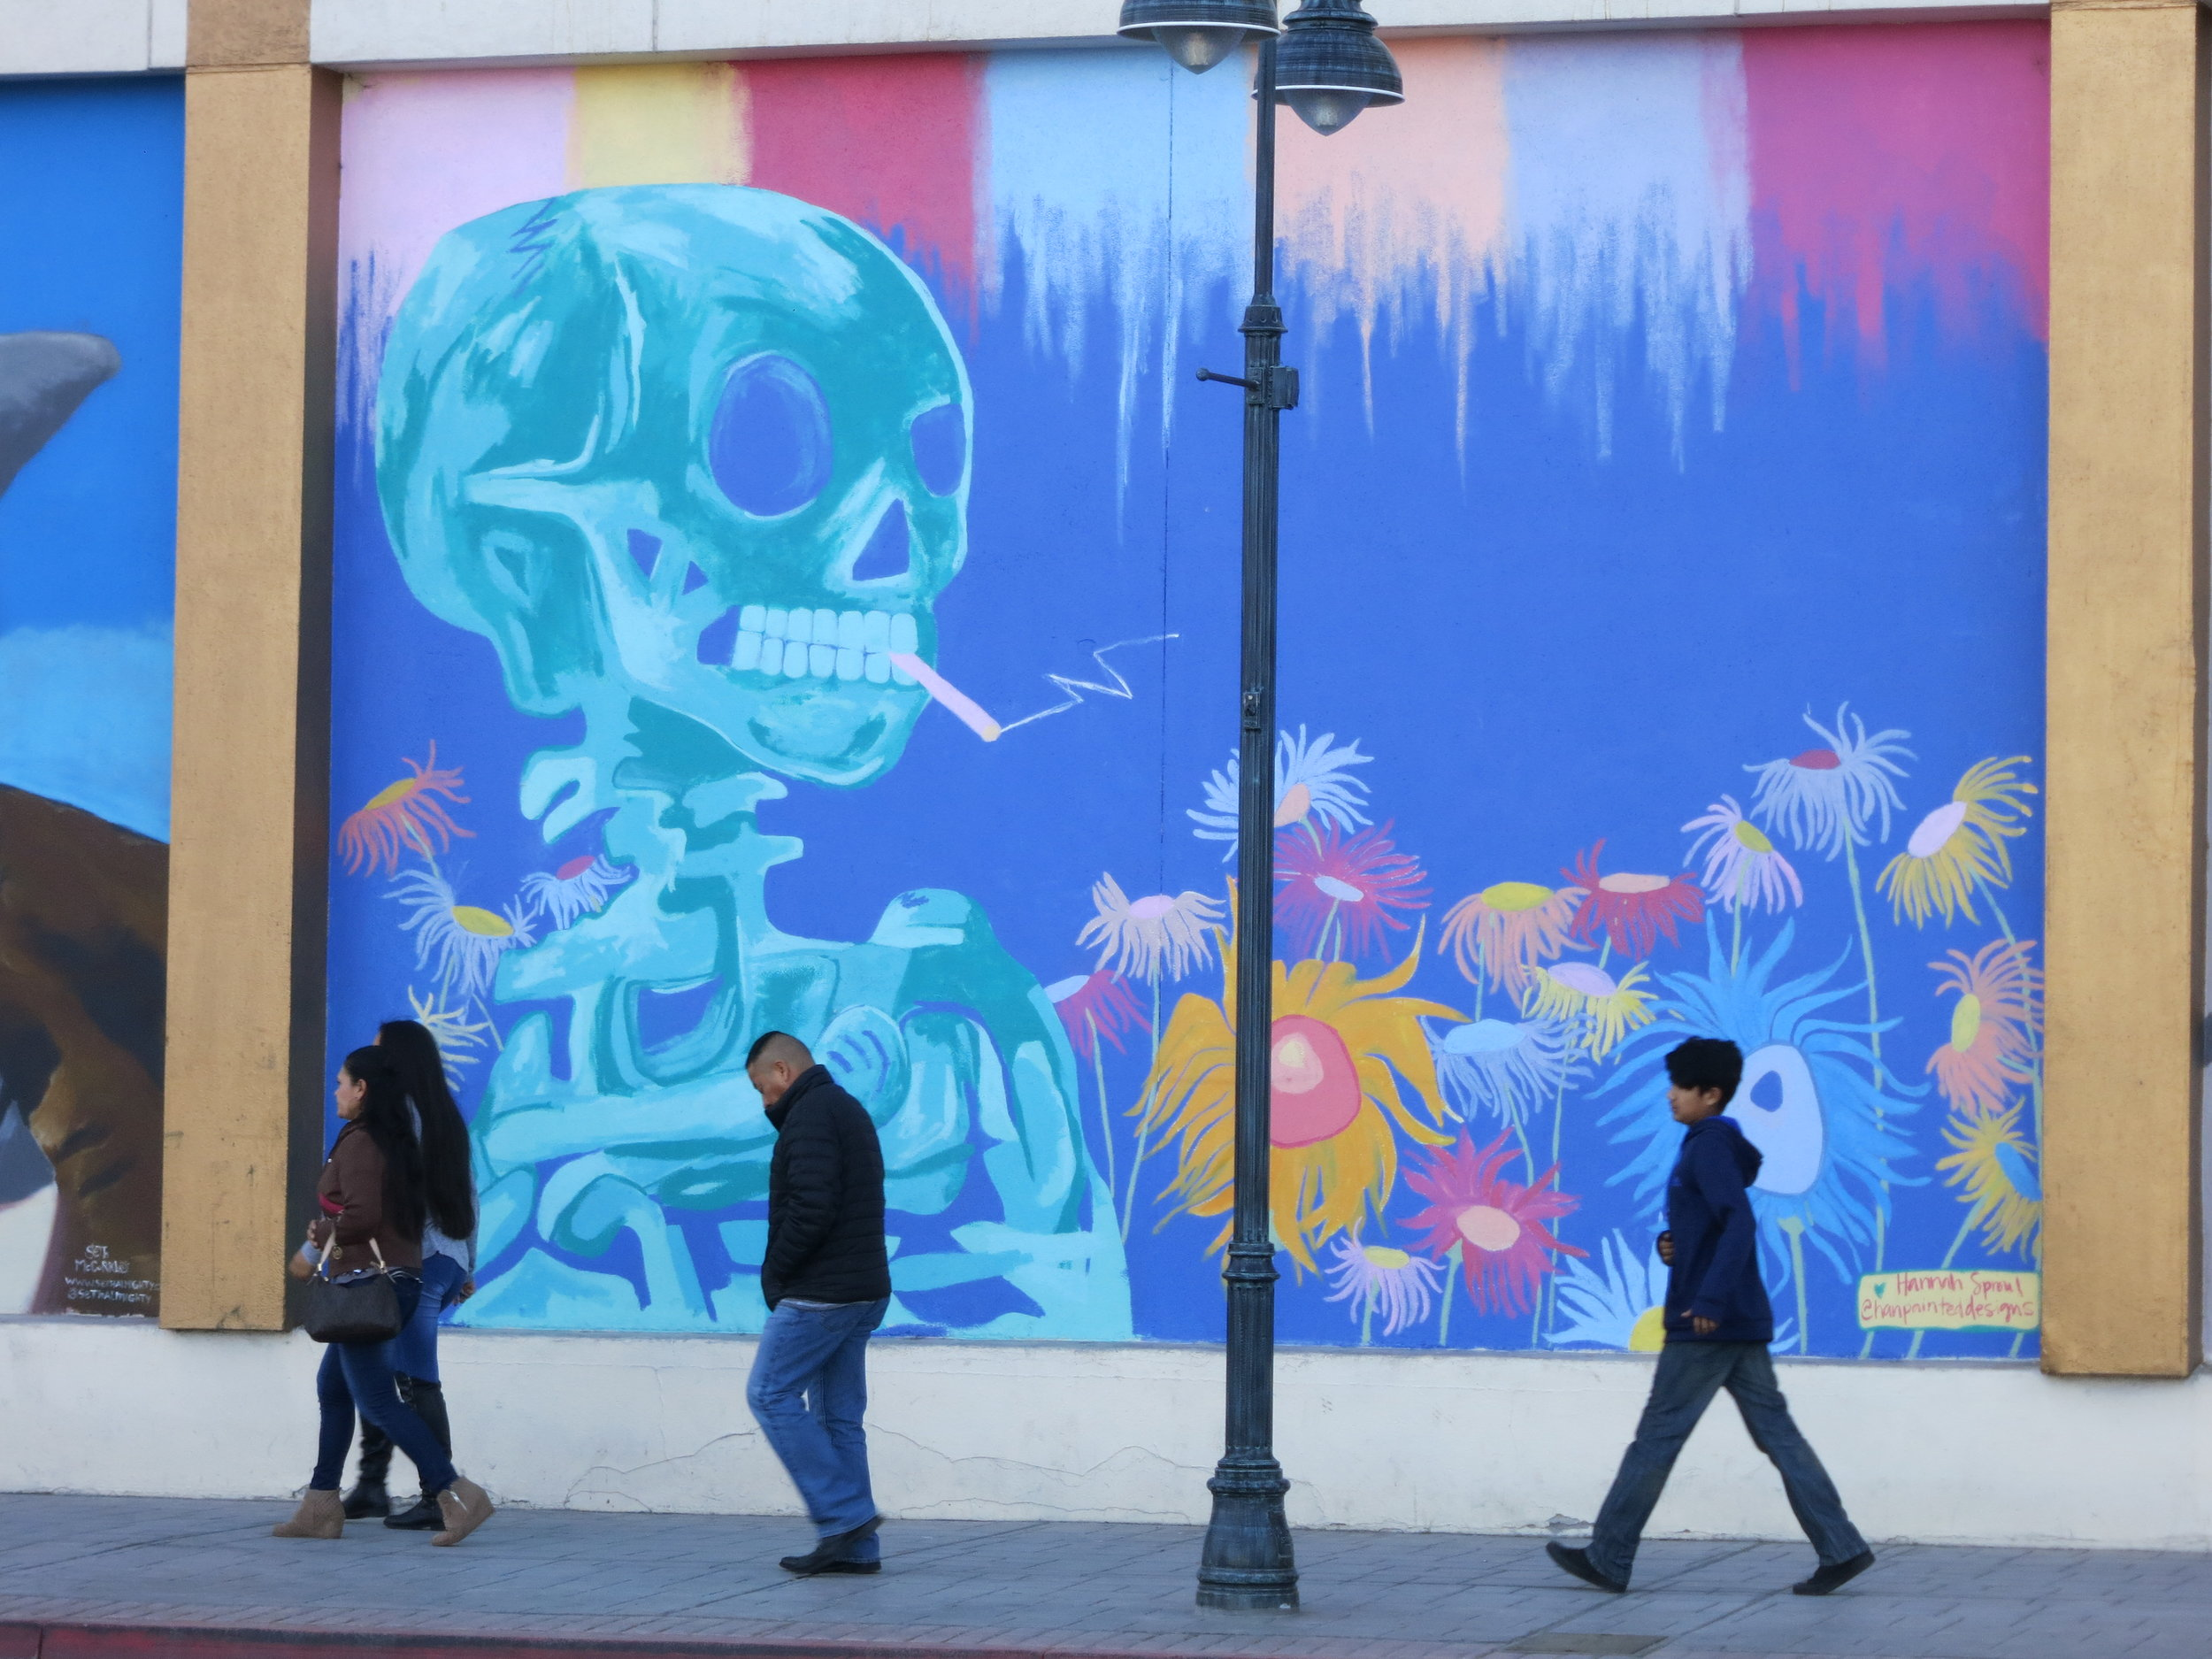 Controlled Street Art: Pedestrians walk by city and competition sanctioned mural art in downtown Reno.